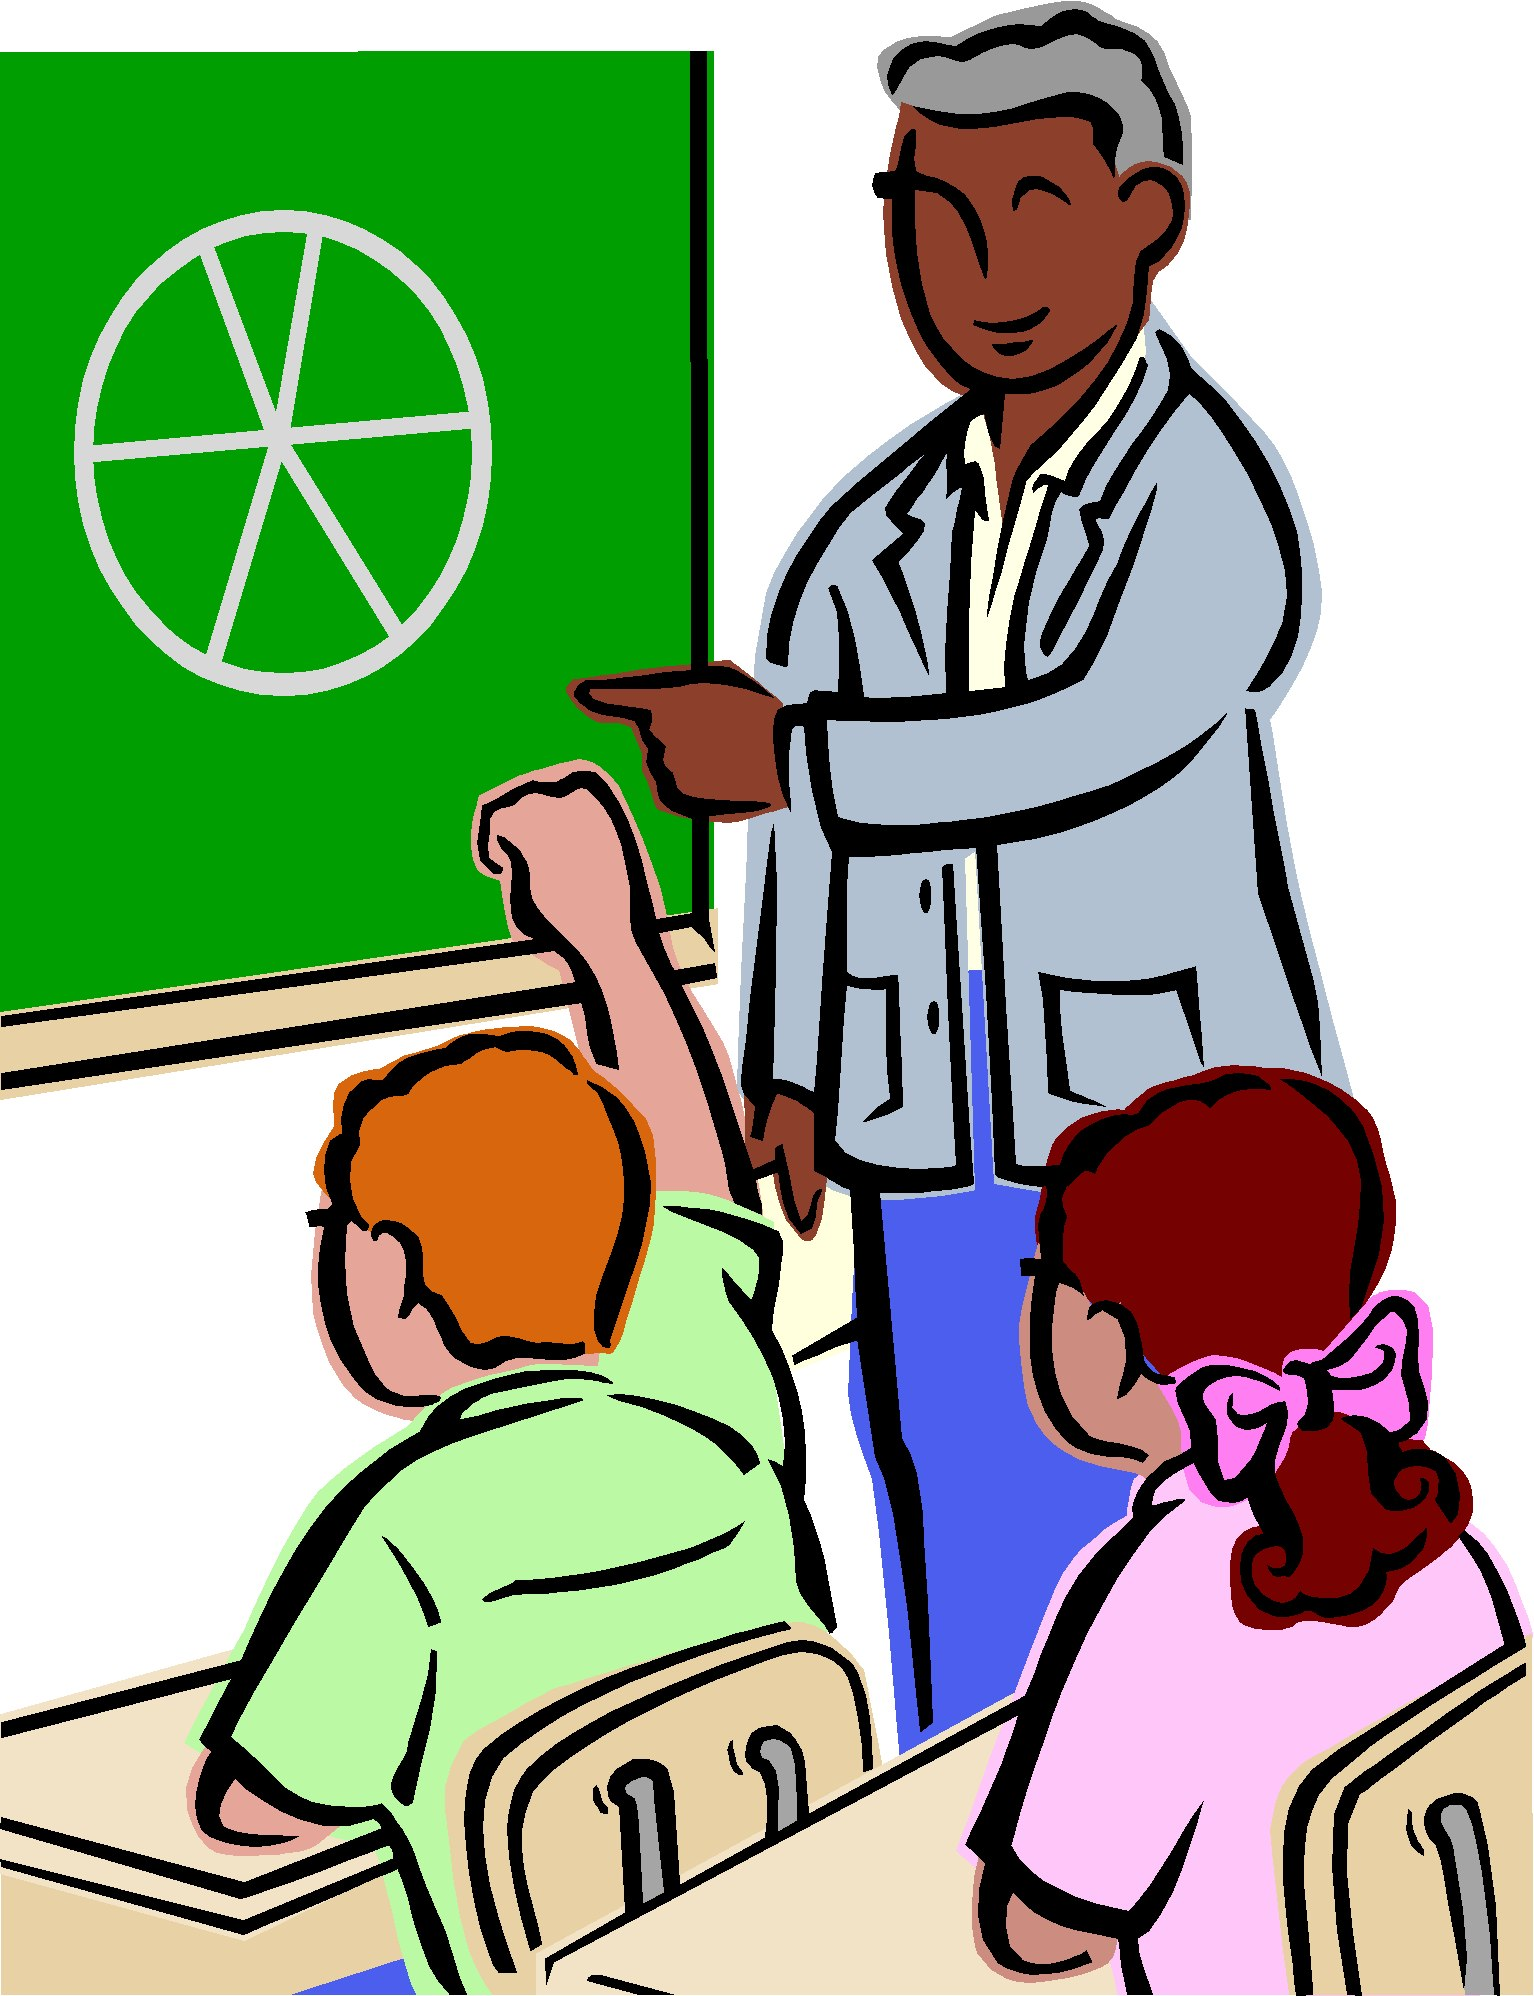 clipart of teaching - photo #45